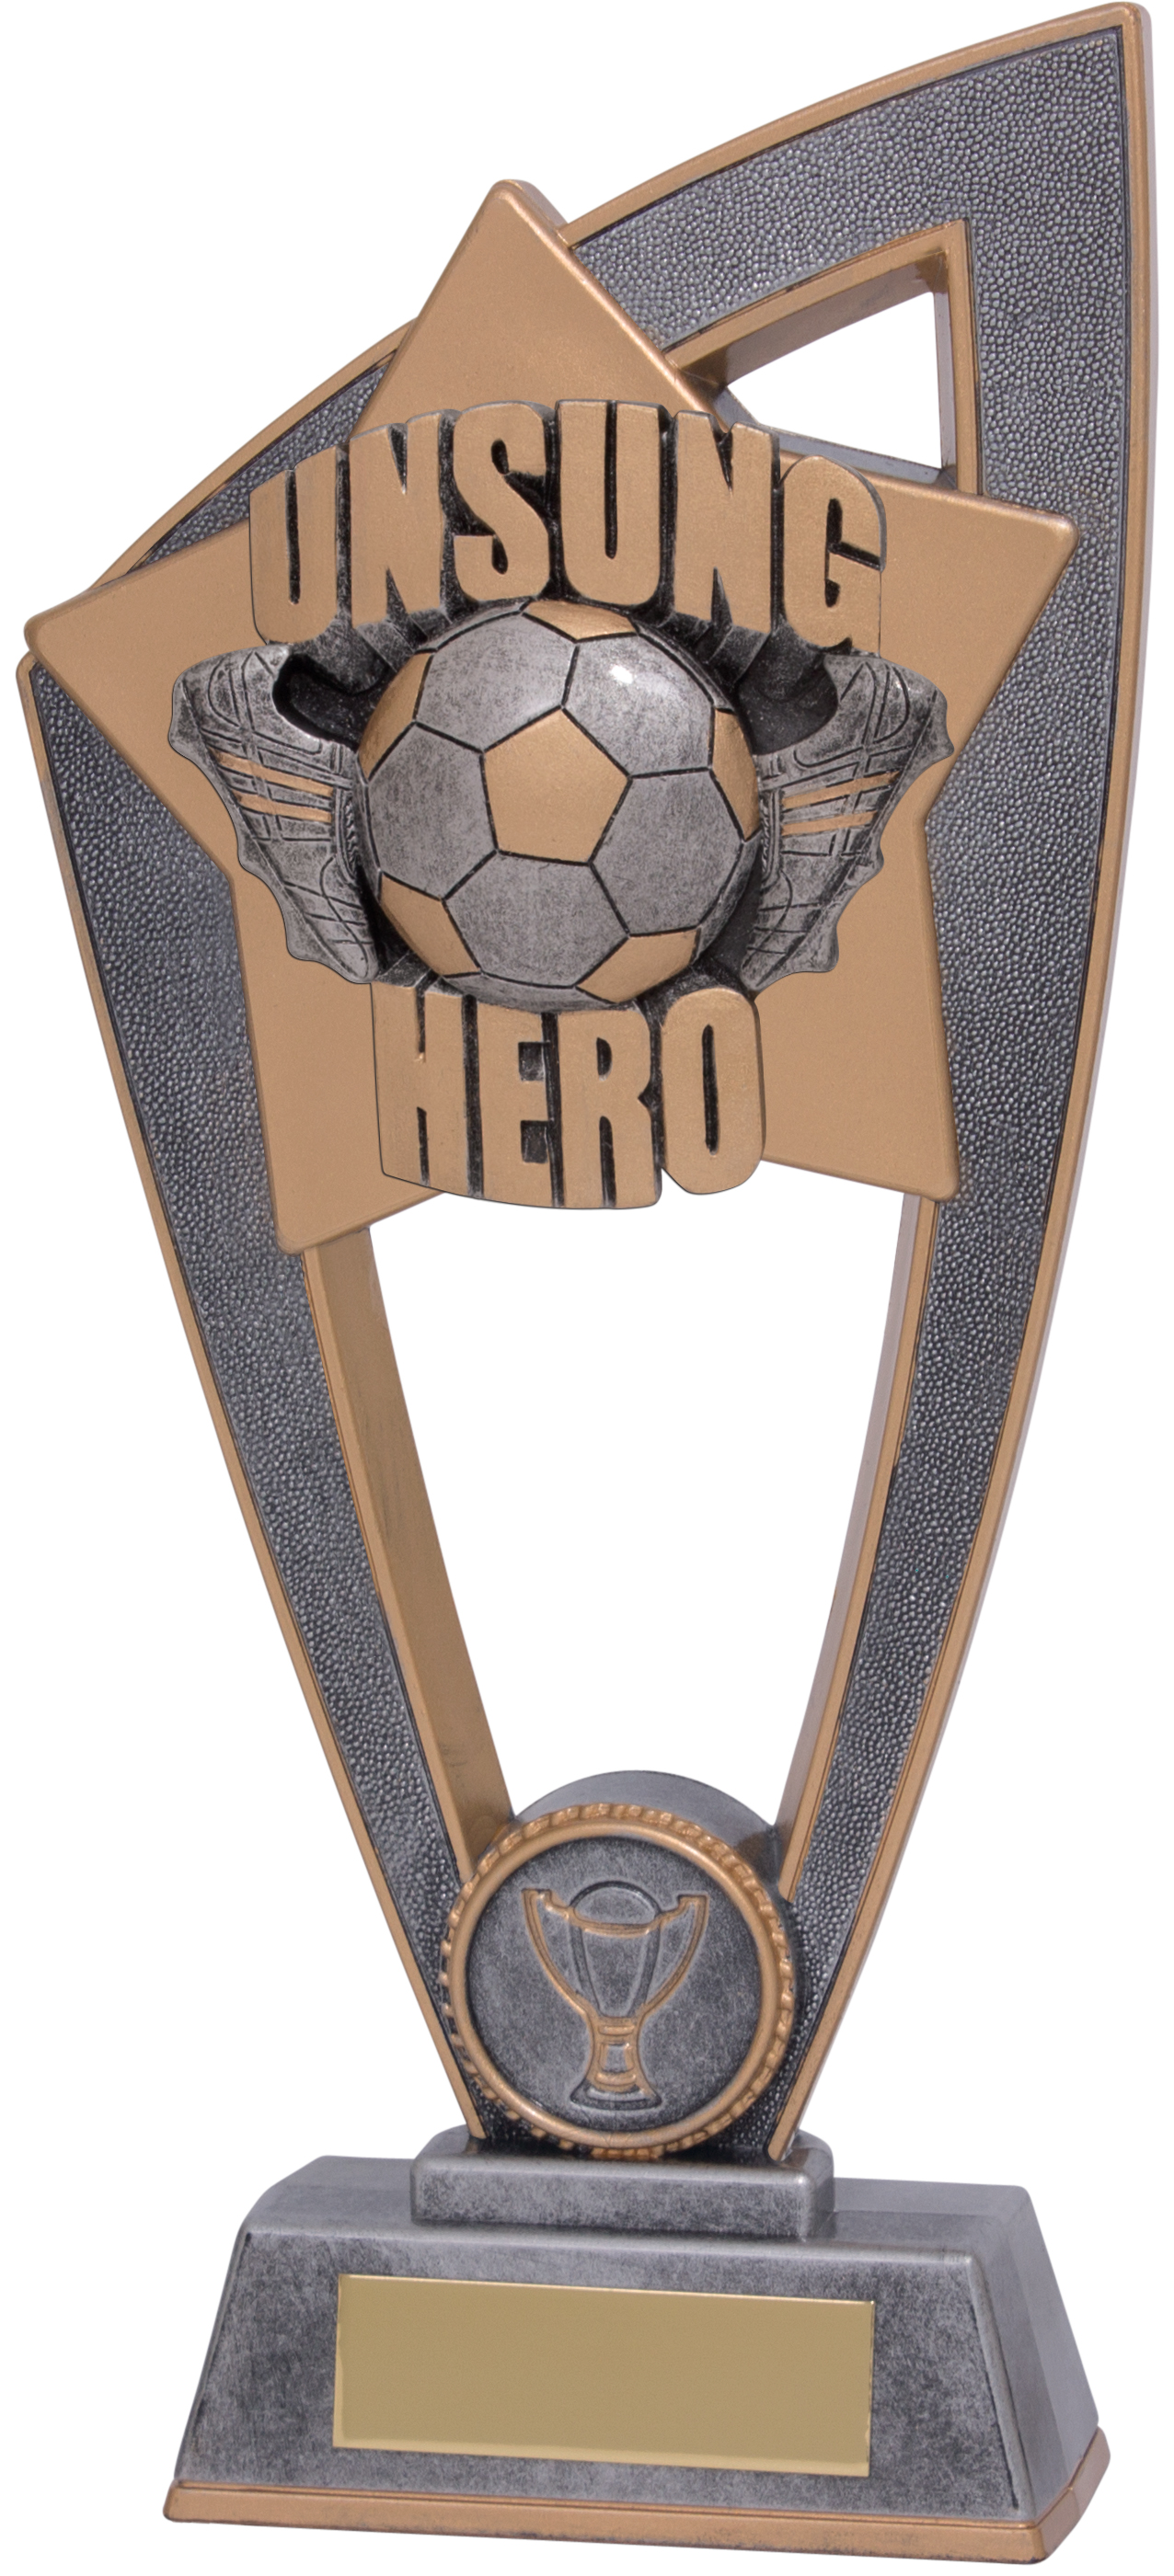 "Football Unsung Hero Star Blast Trophy 20cm (8"")"